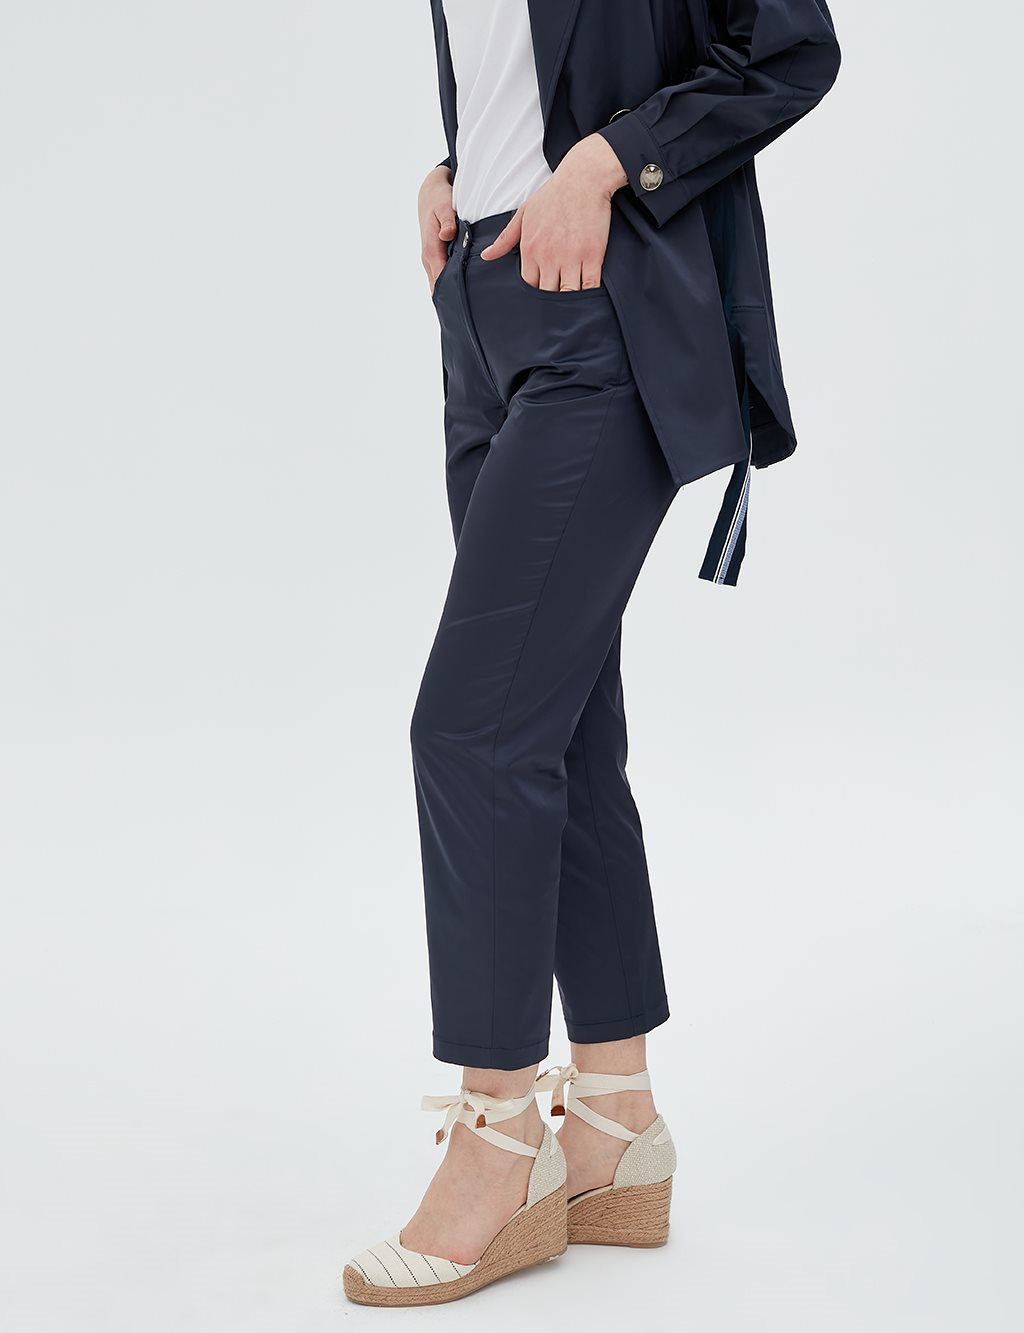 Fabric Detailed Pants B20 19036 Navy